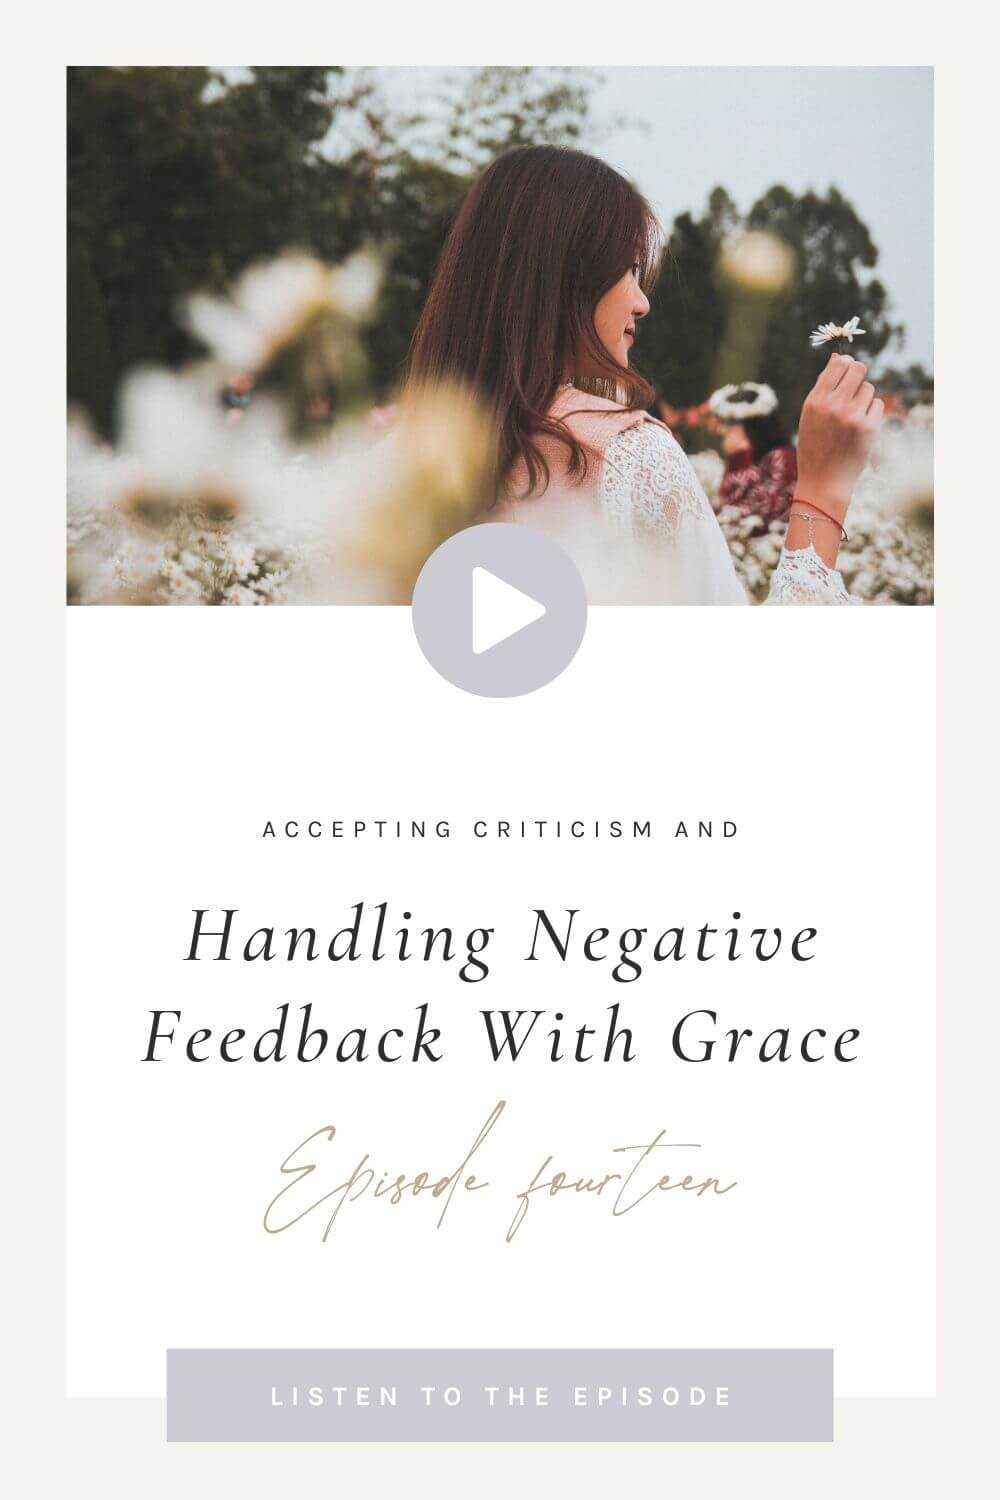 pin template - handling negative feedback with grace with picture of a woman in a field of flowers looking away from the camera